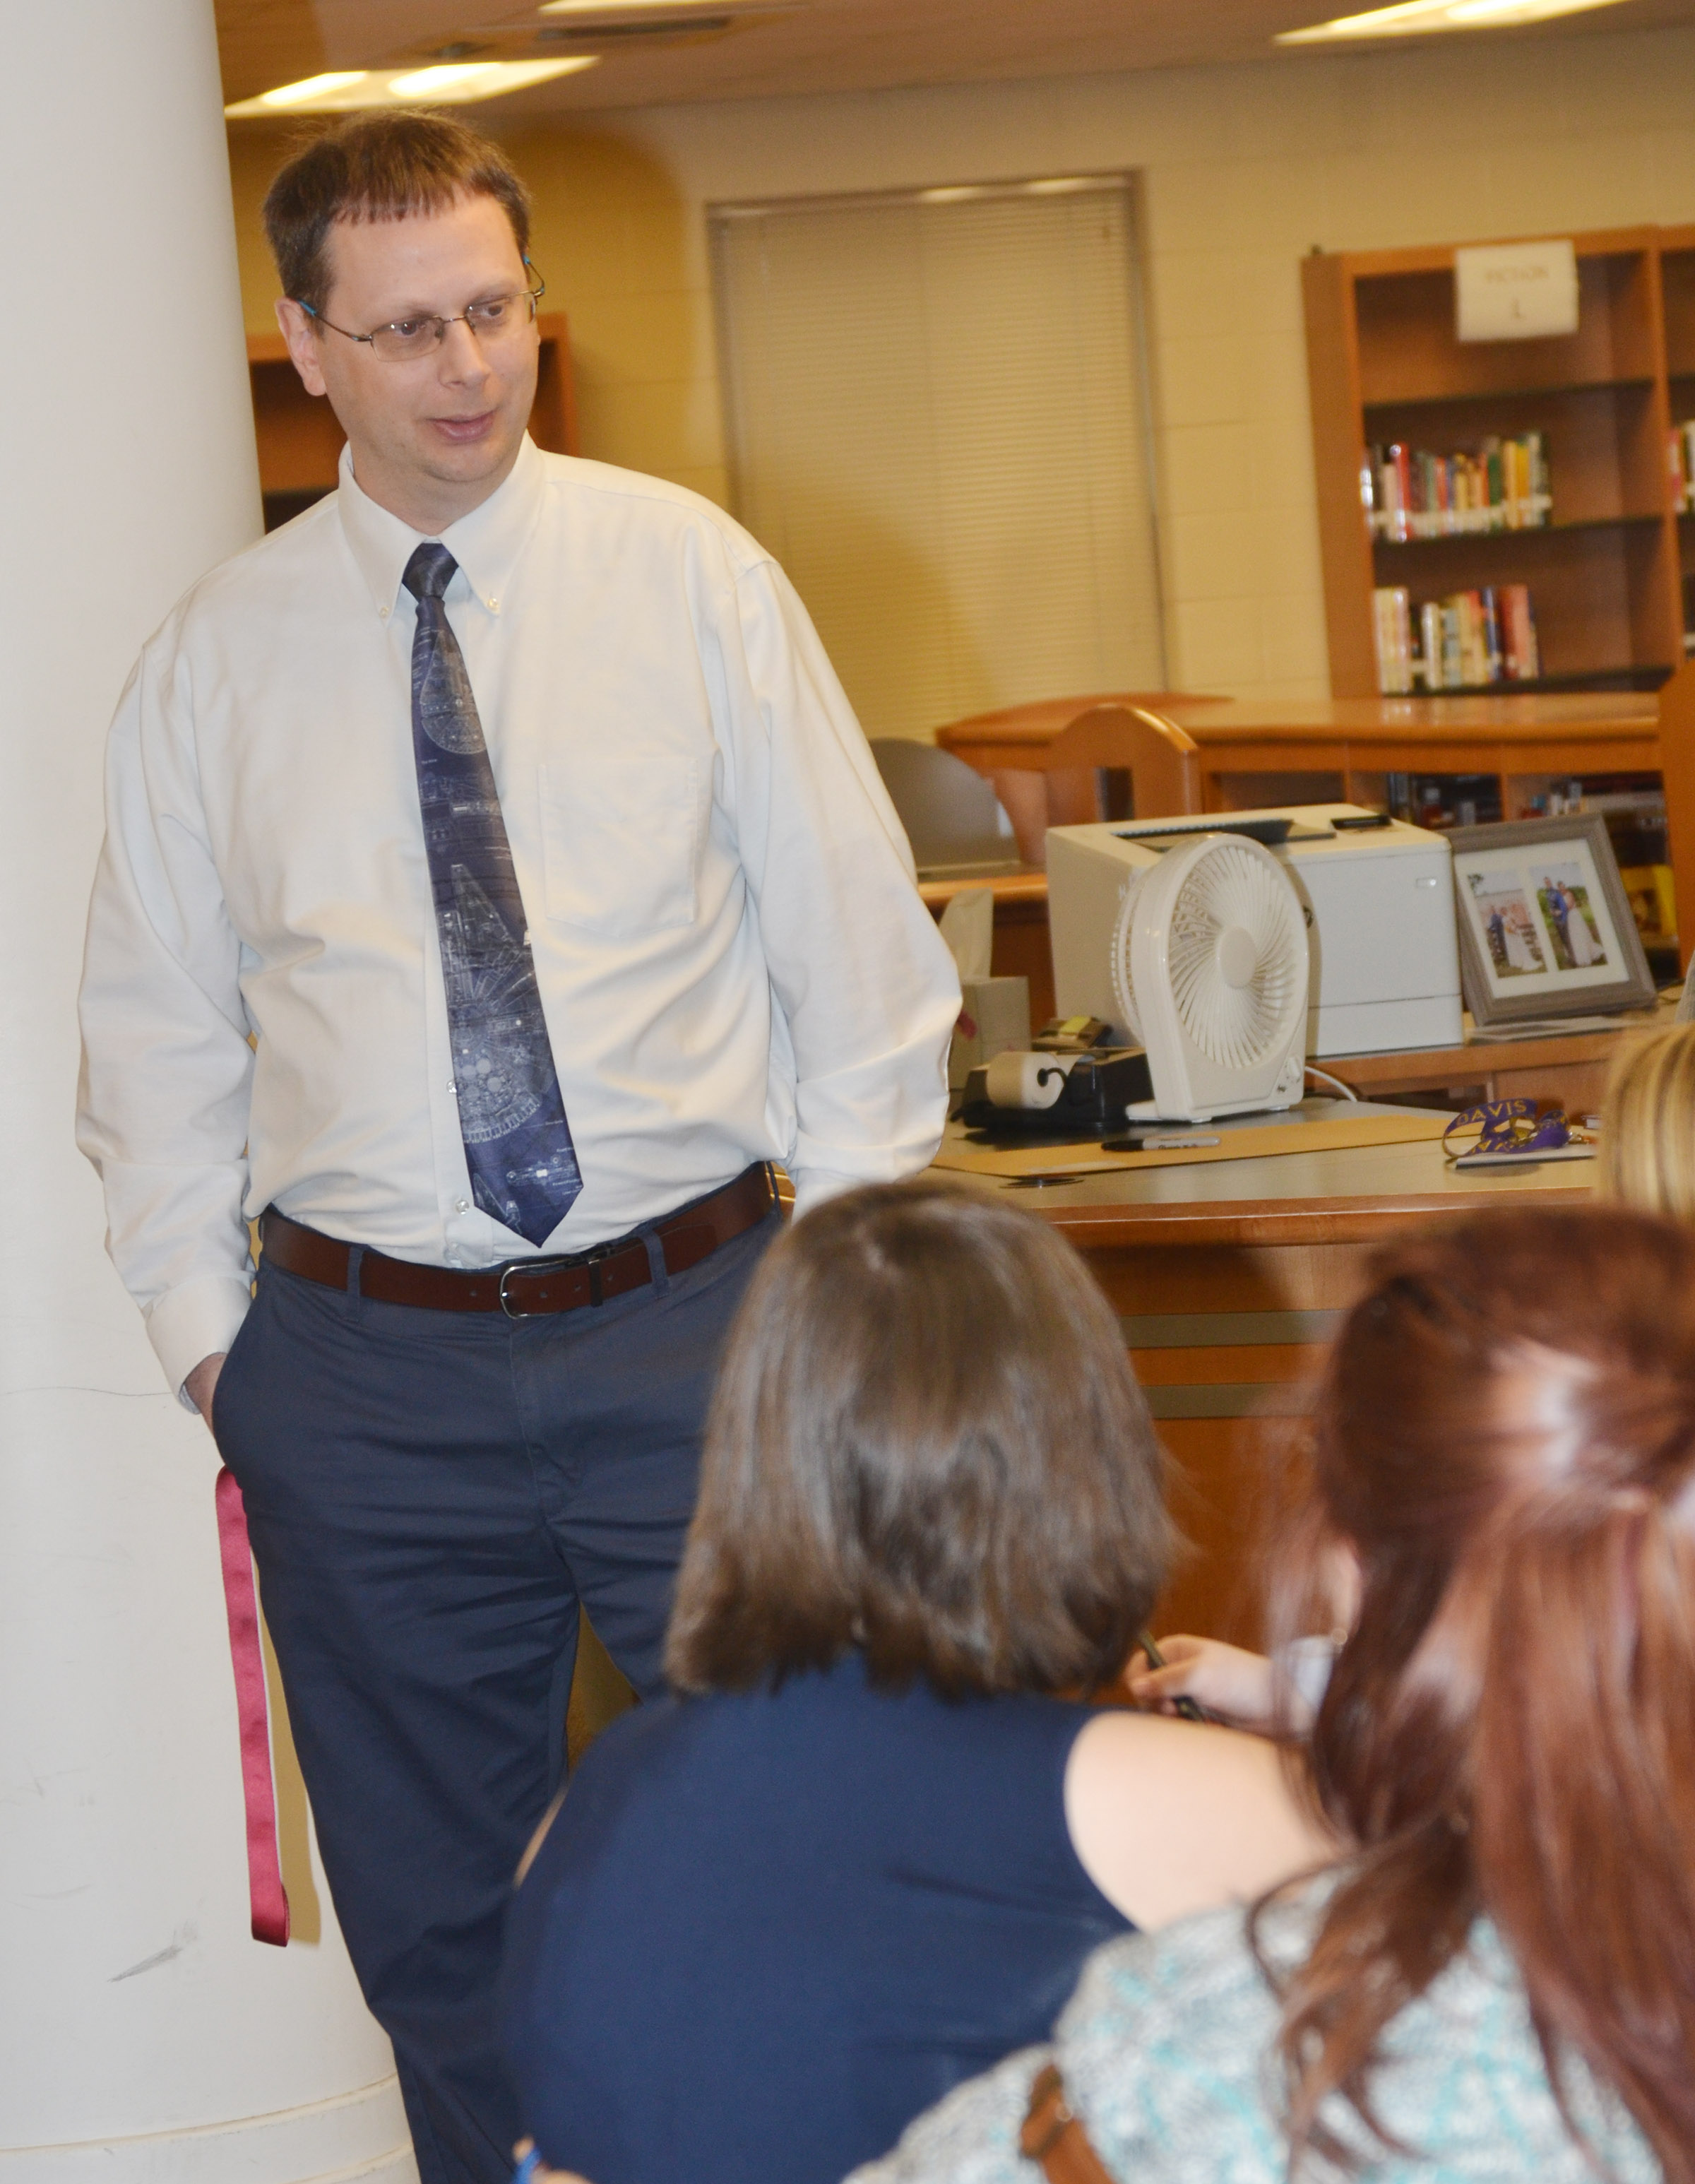 CHS Guidance Counselor Richard Dooley tells CU education students that working at a school is a very fast-paced job.